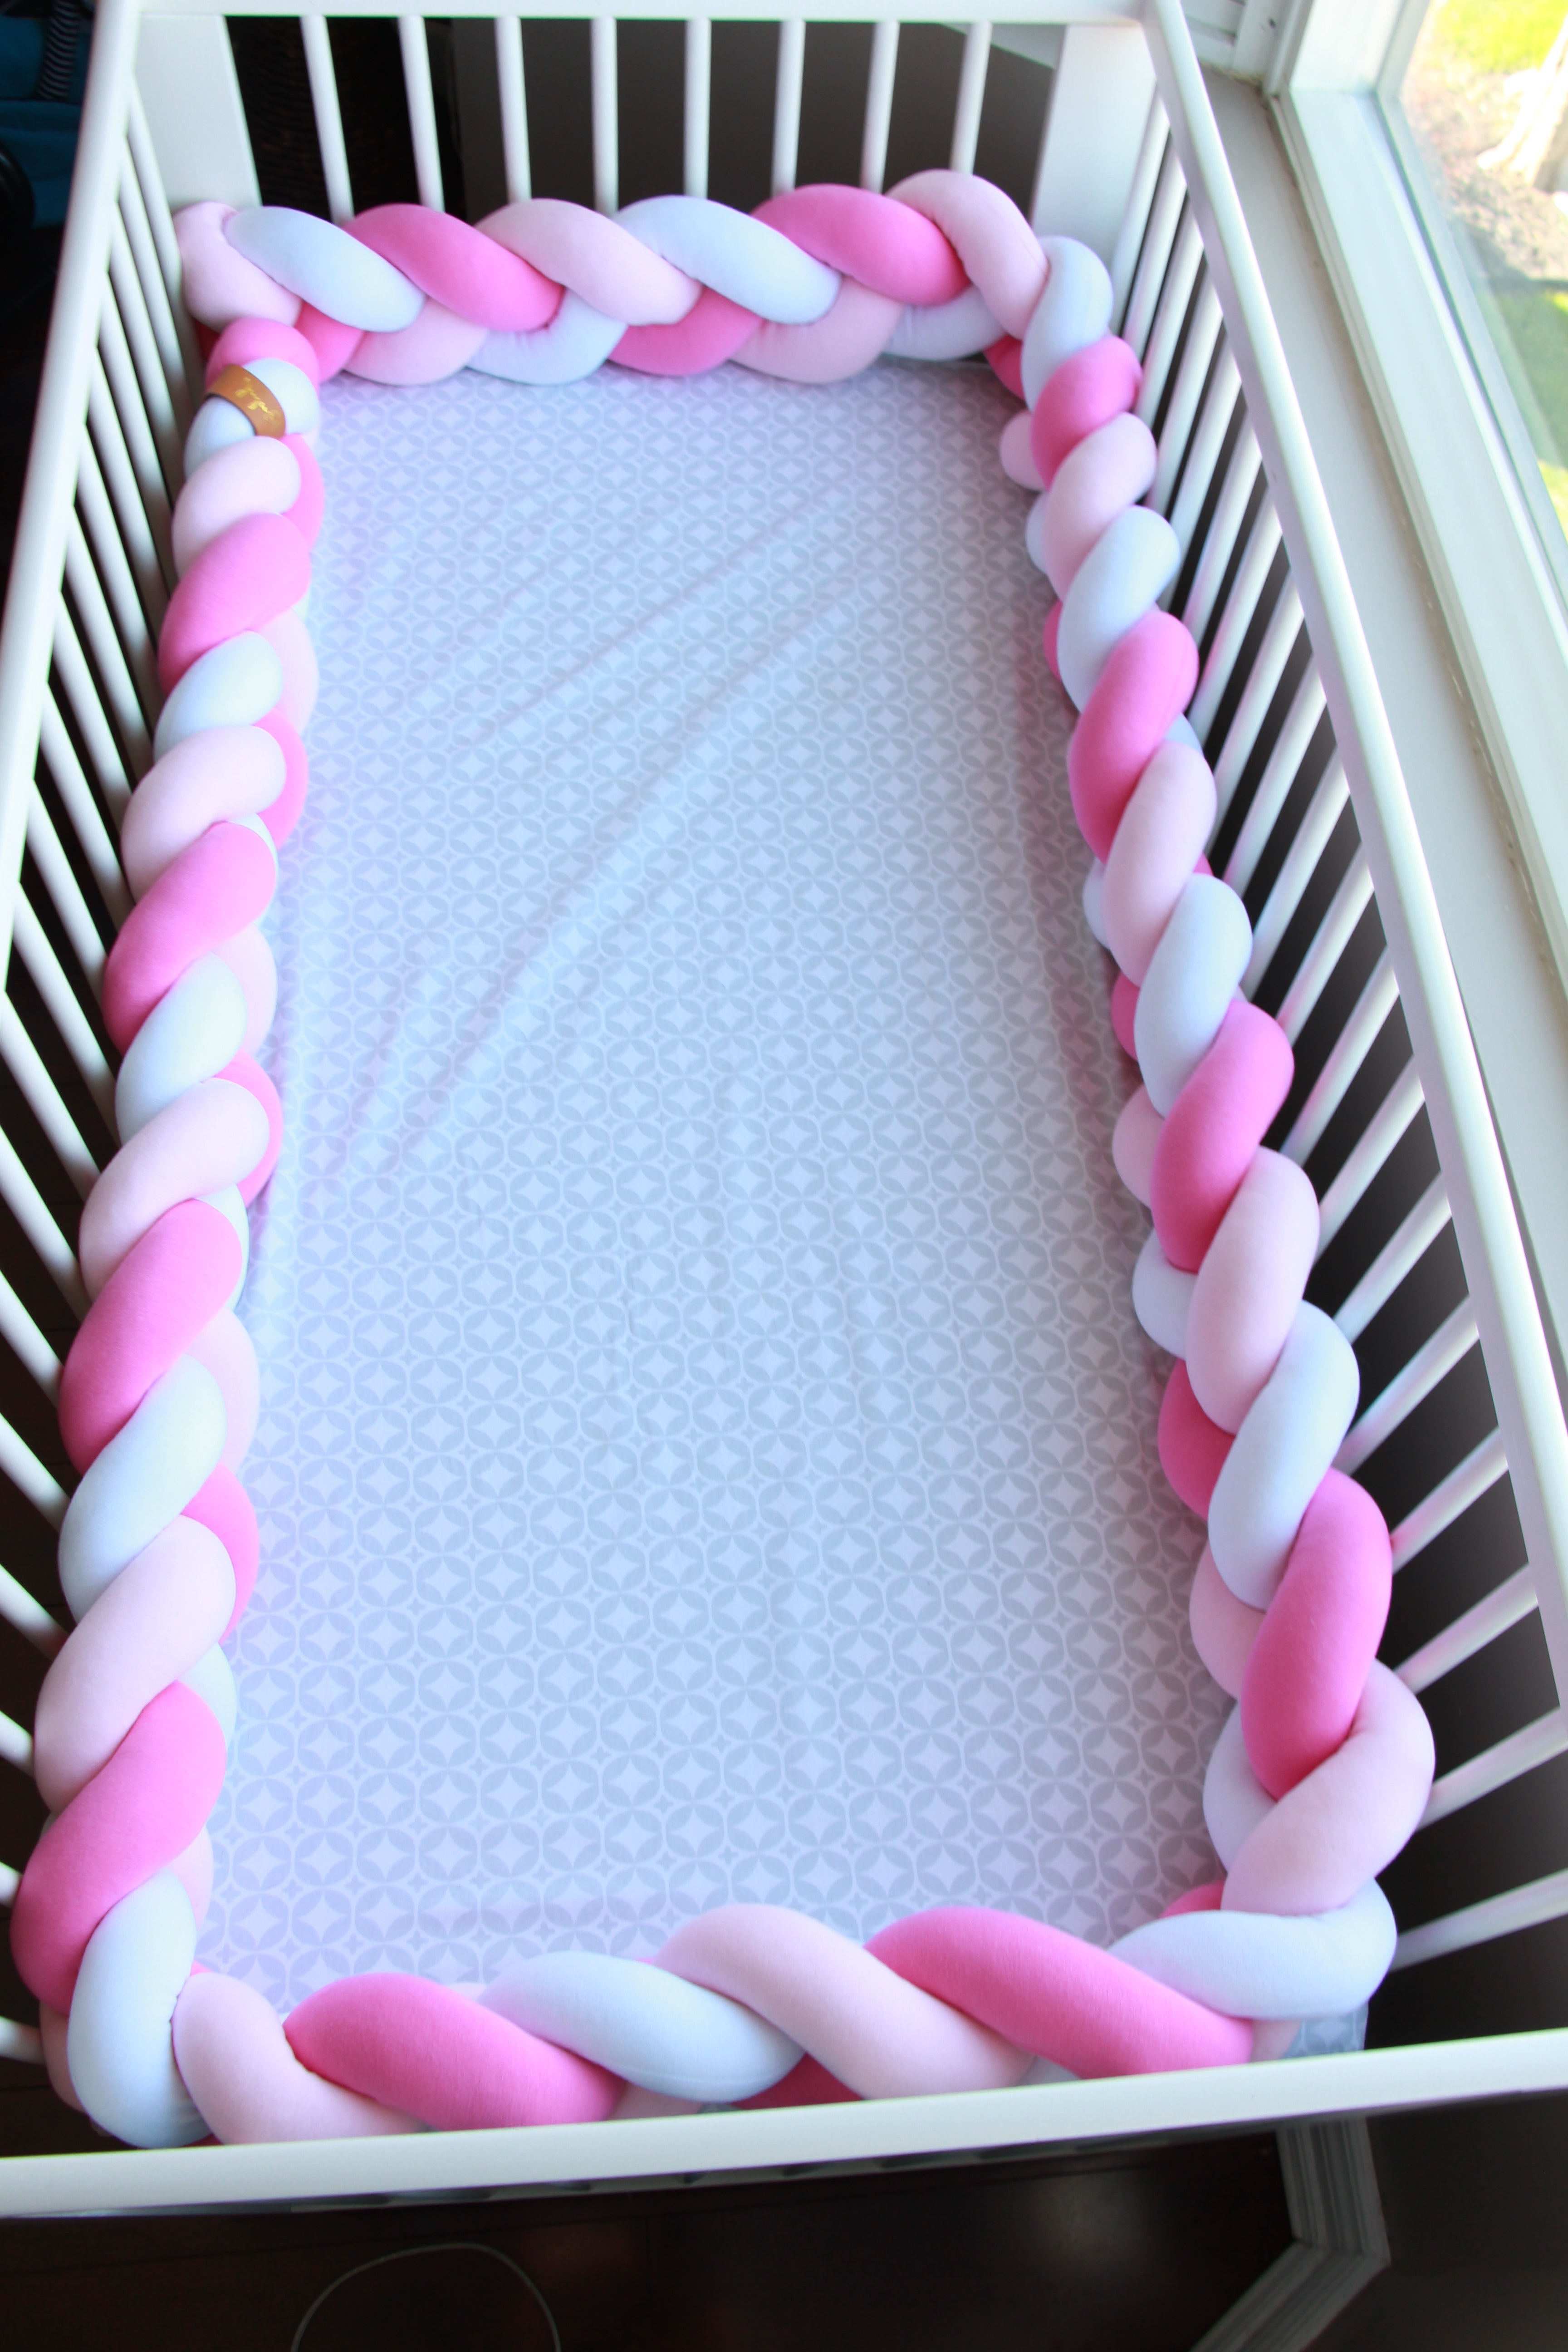 Braided Crib Bumper/Bed Bolsters - See more Knot Pillows & Cushions at JujuAndJake.com